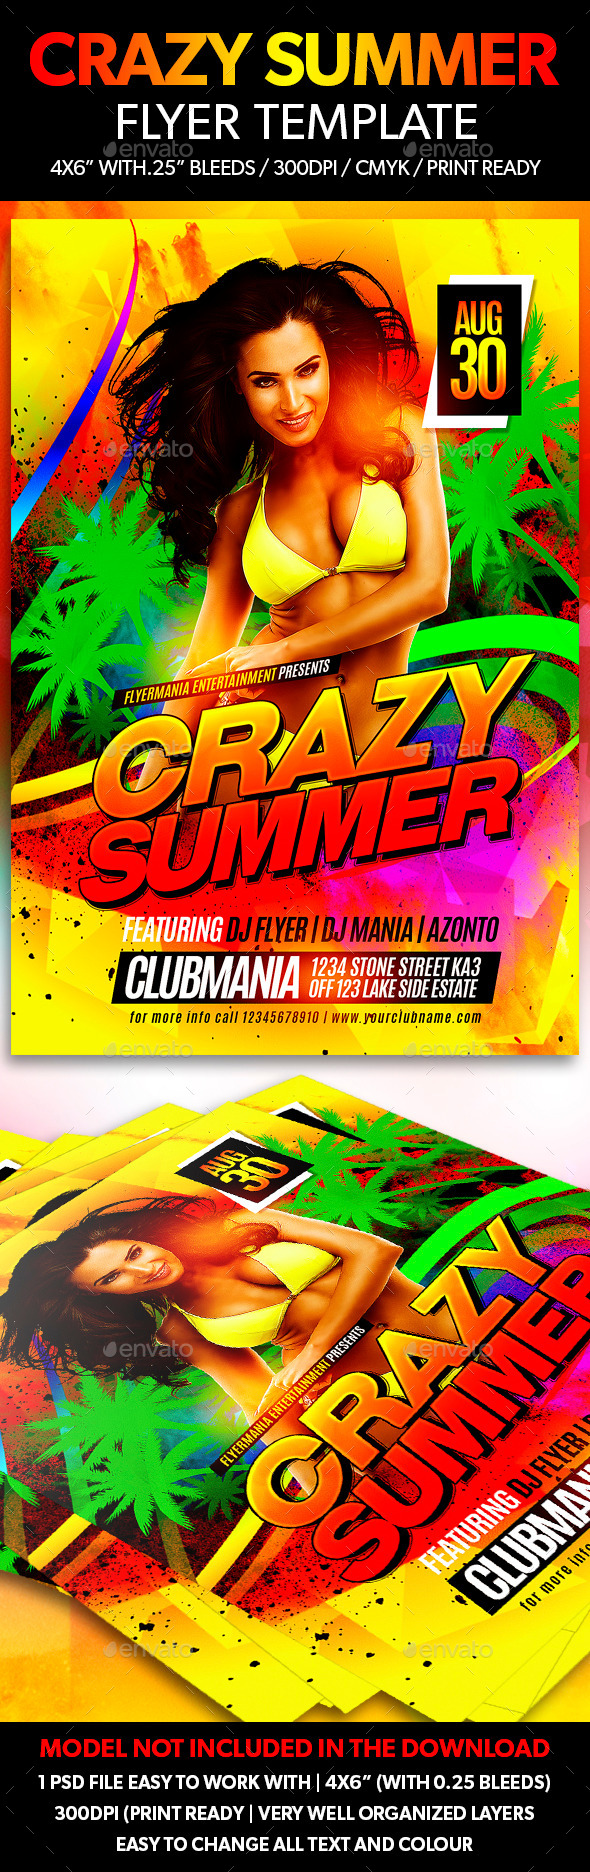 Crazy Summer Flyer Template - Clubs & Parties Events